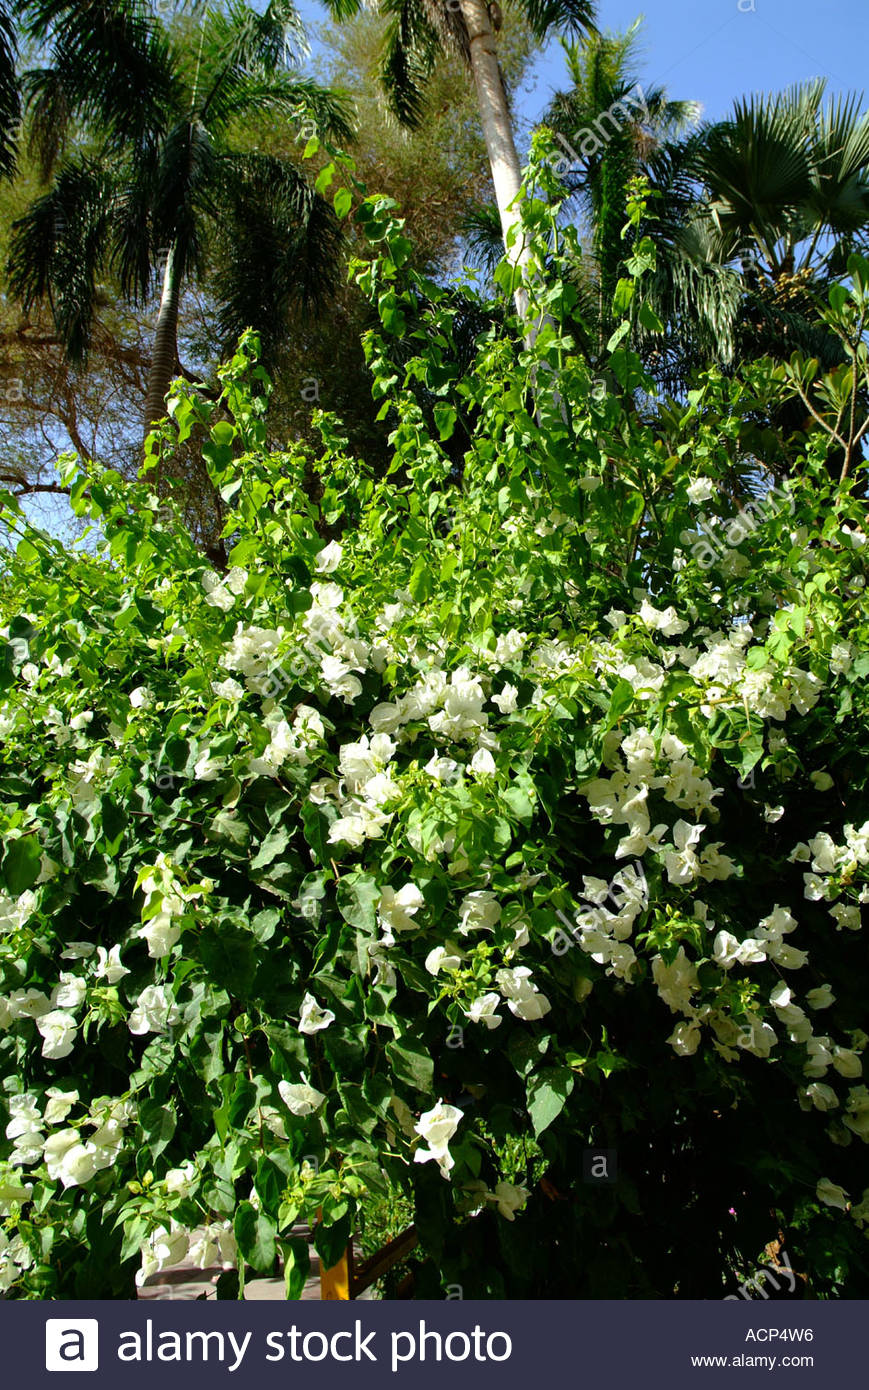 Colourful Climbing Plant With White Flowers On Plantation Or Stock